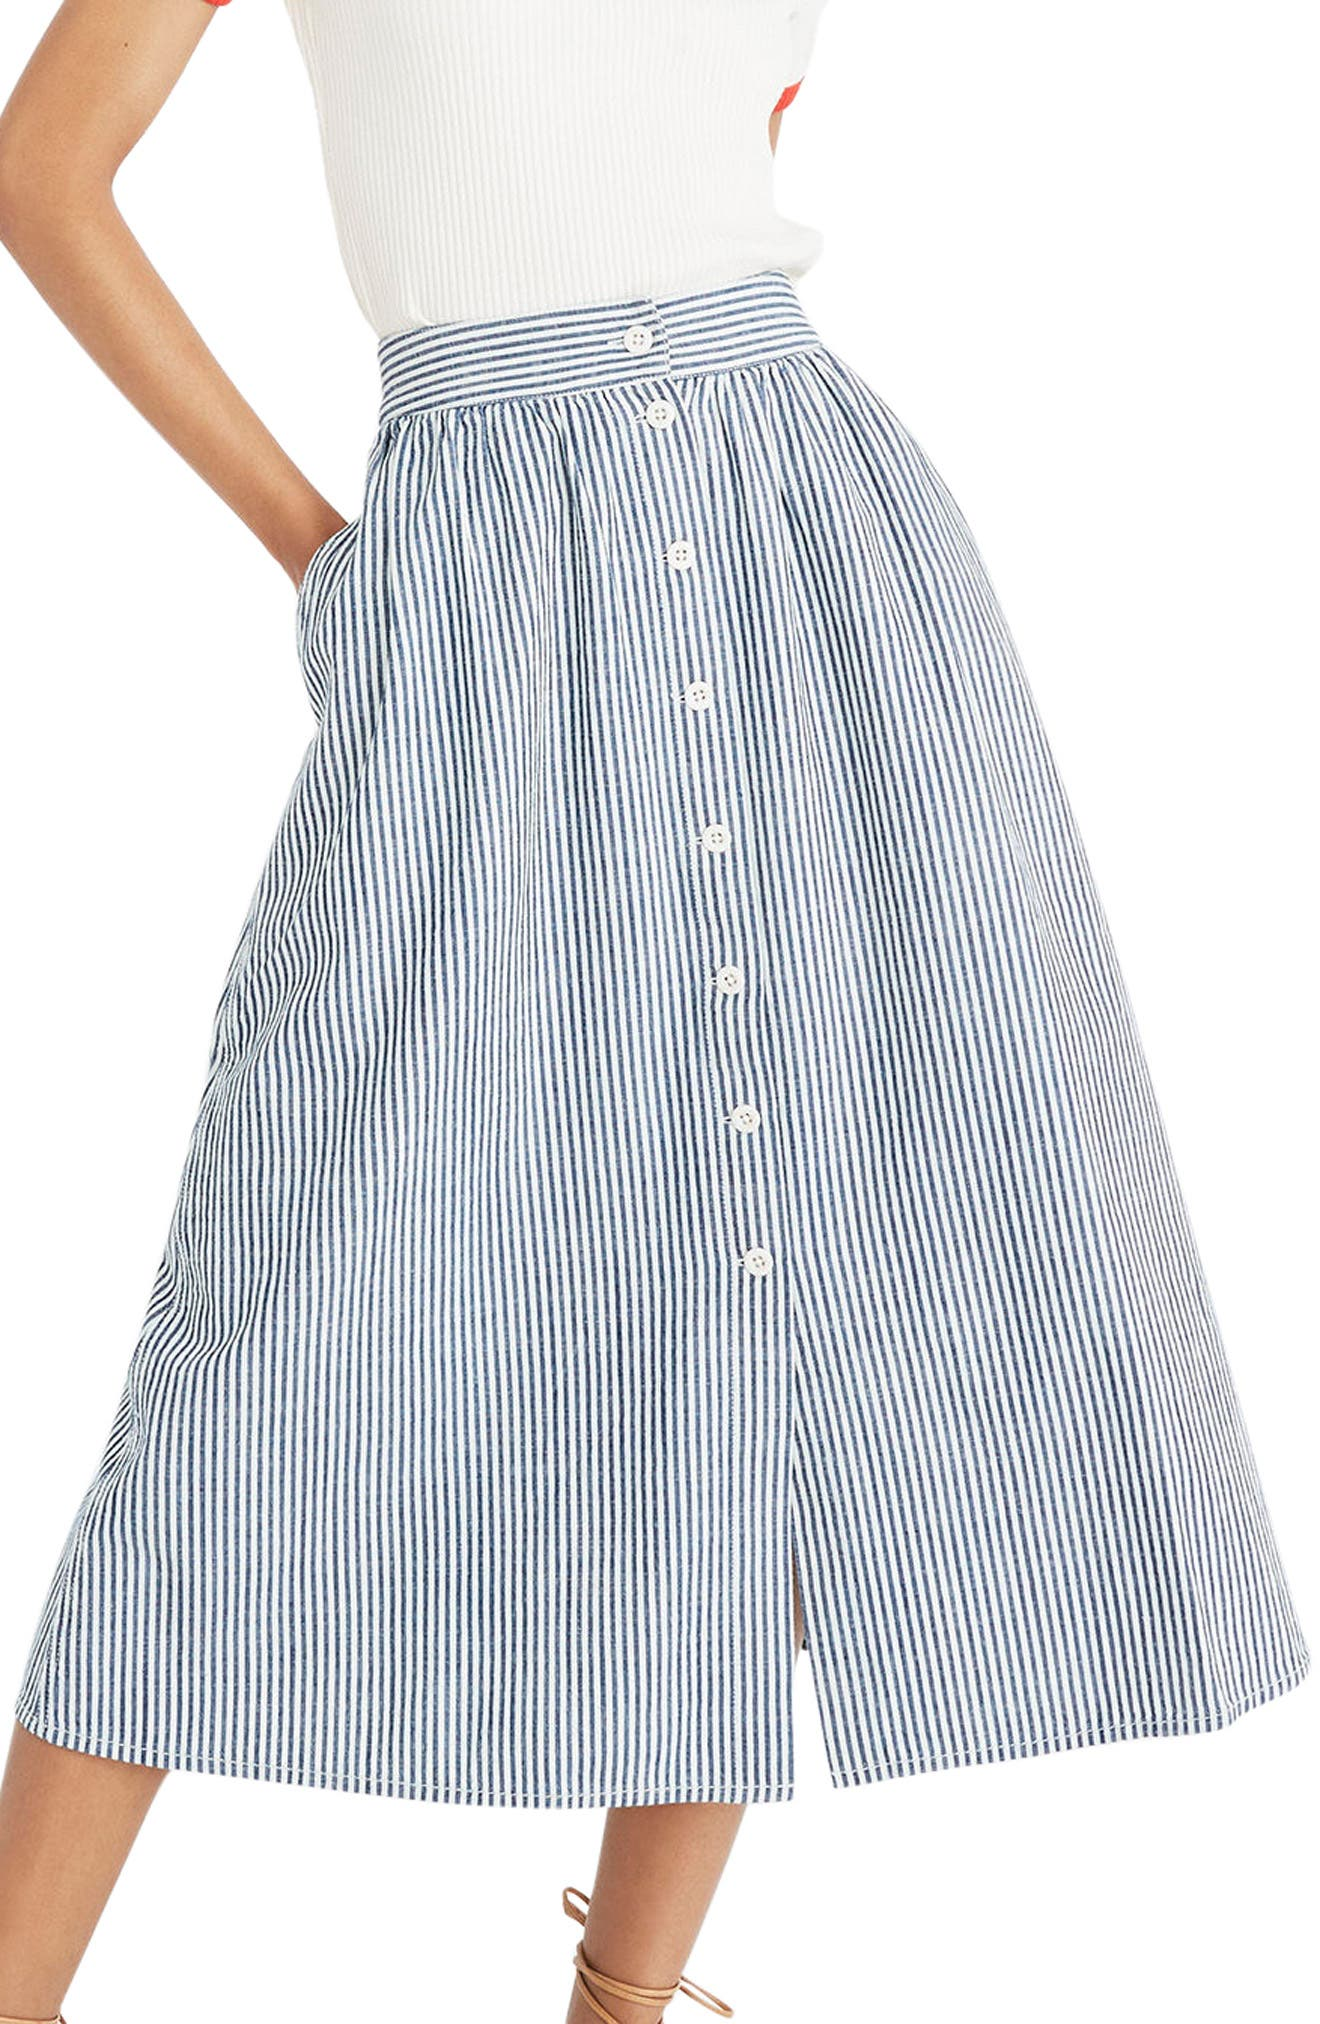 Palisade Chambray Stripe Button Front Midi Skirt,                             Main thumbnail 1, color,                             Chambray Stripe